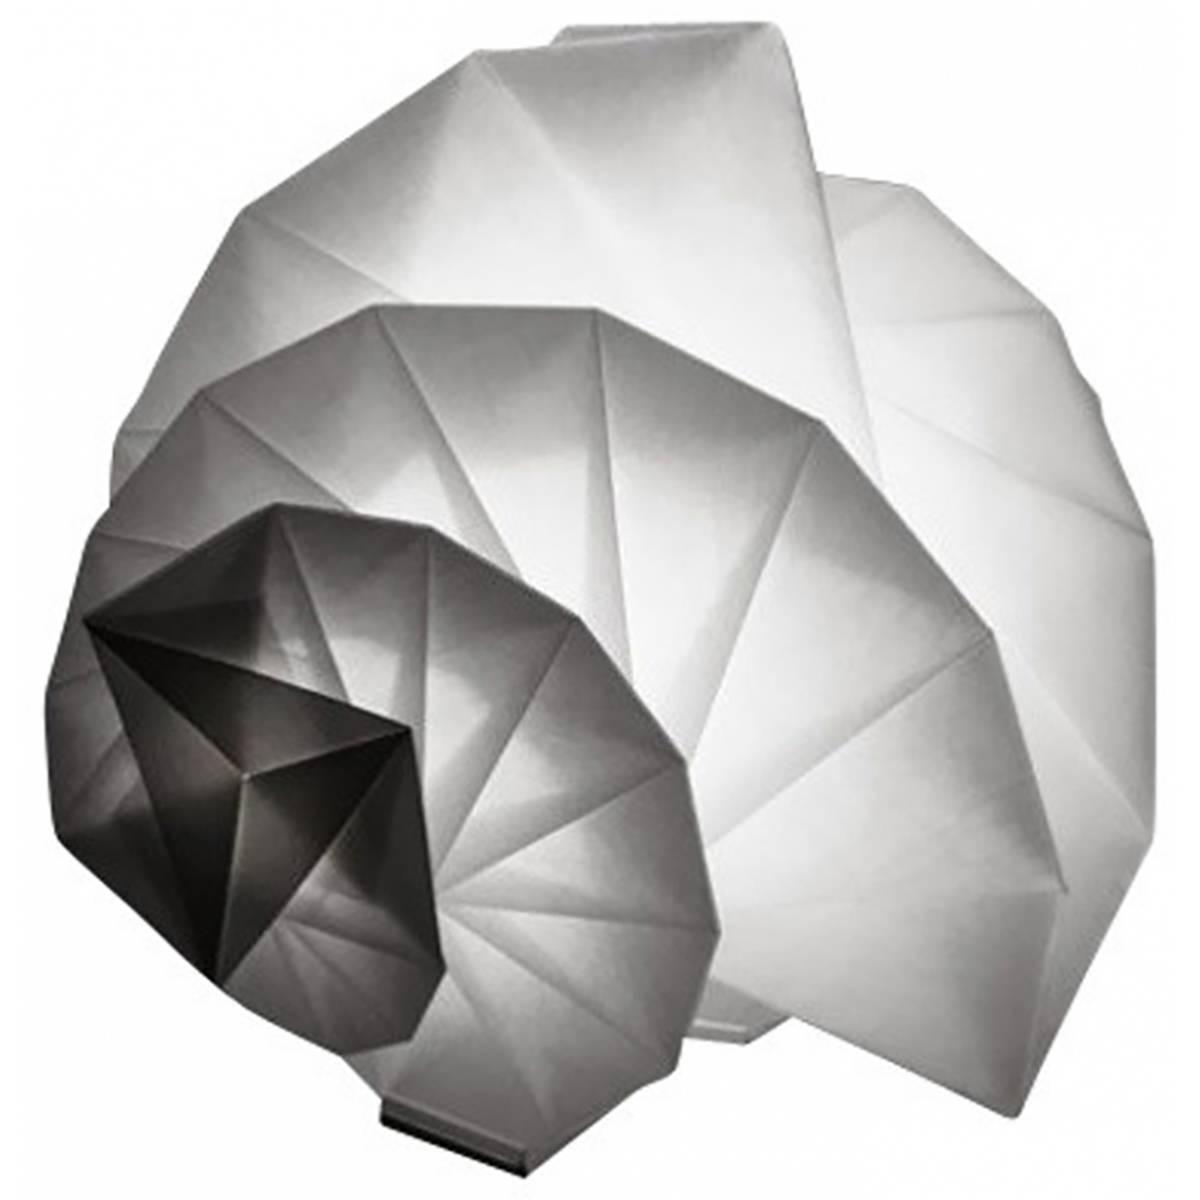 Brand new artemide mendori table lamp by issey miyake for for Artemide issey miyake